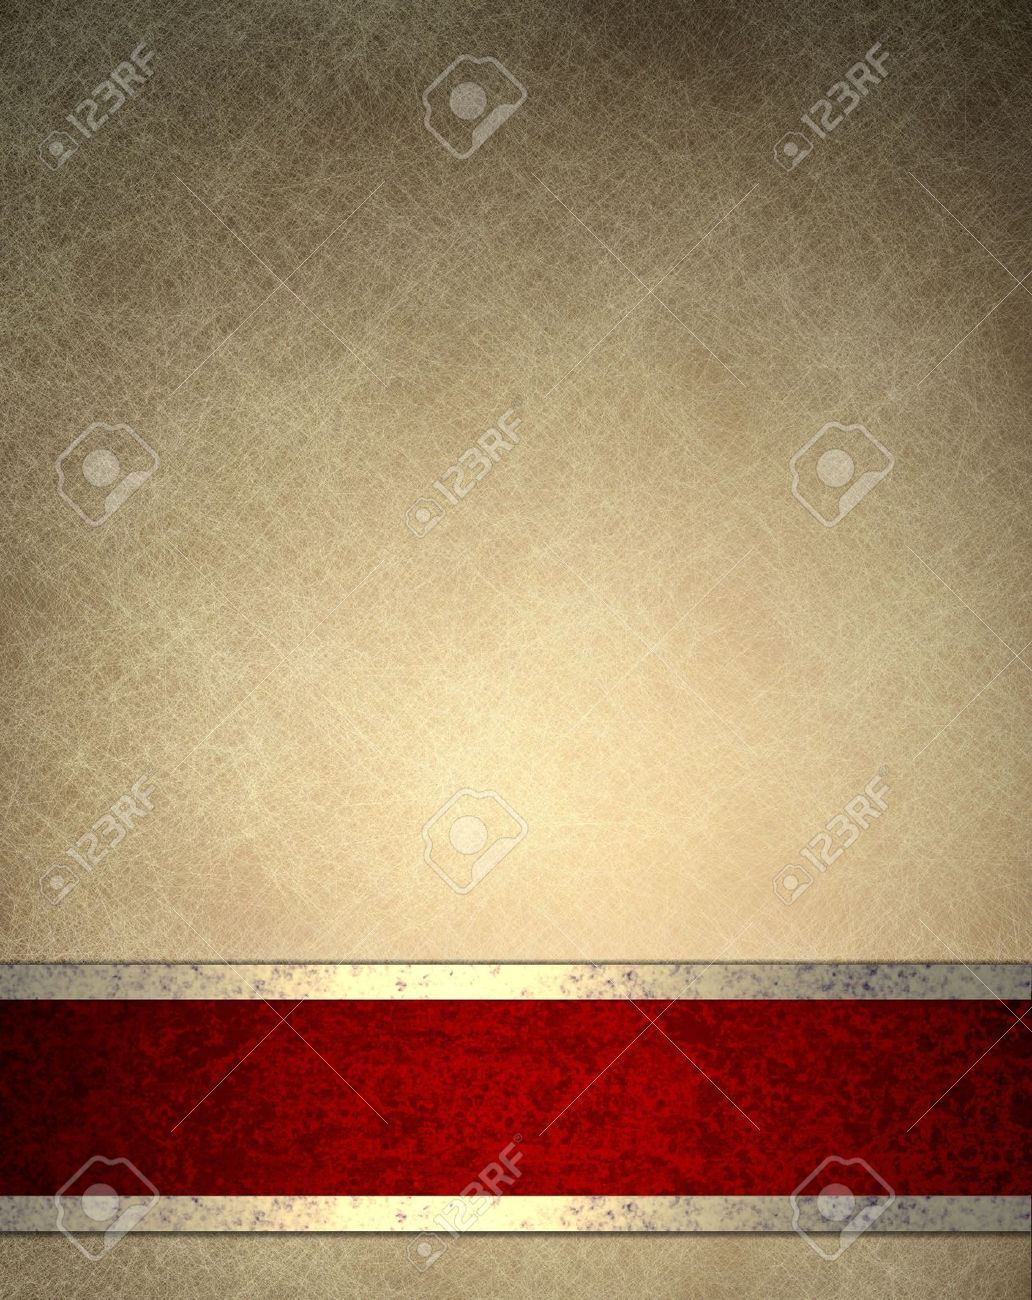 Brown Beige Background With Old Parchment Texture Paper Design Or Elegant Wallpaper Frame